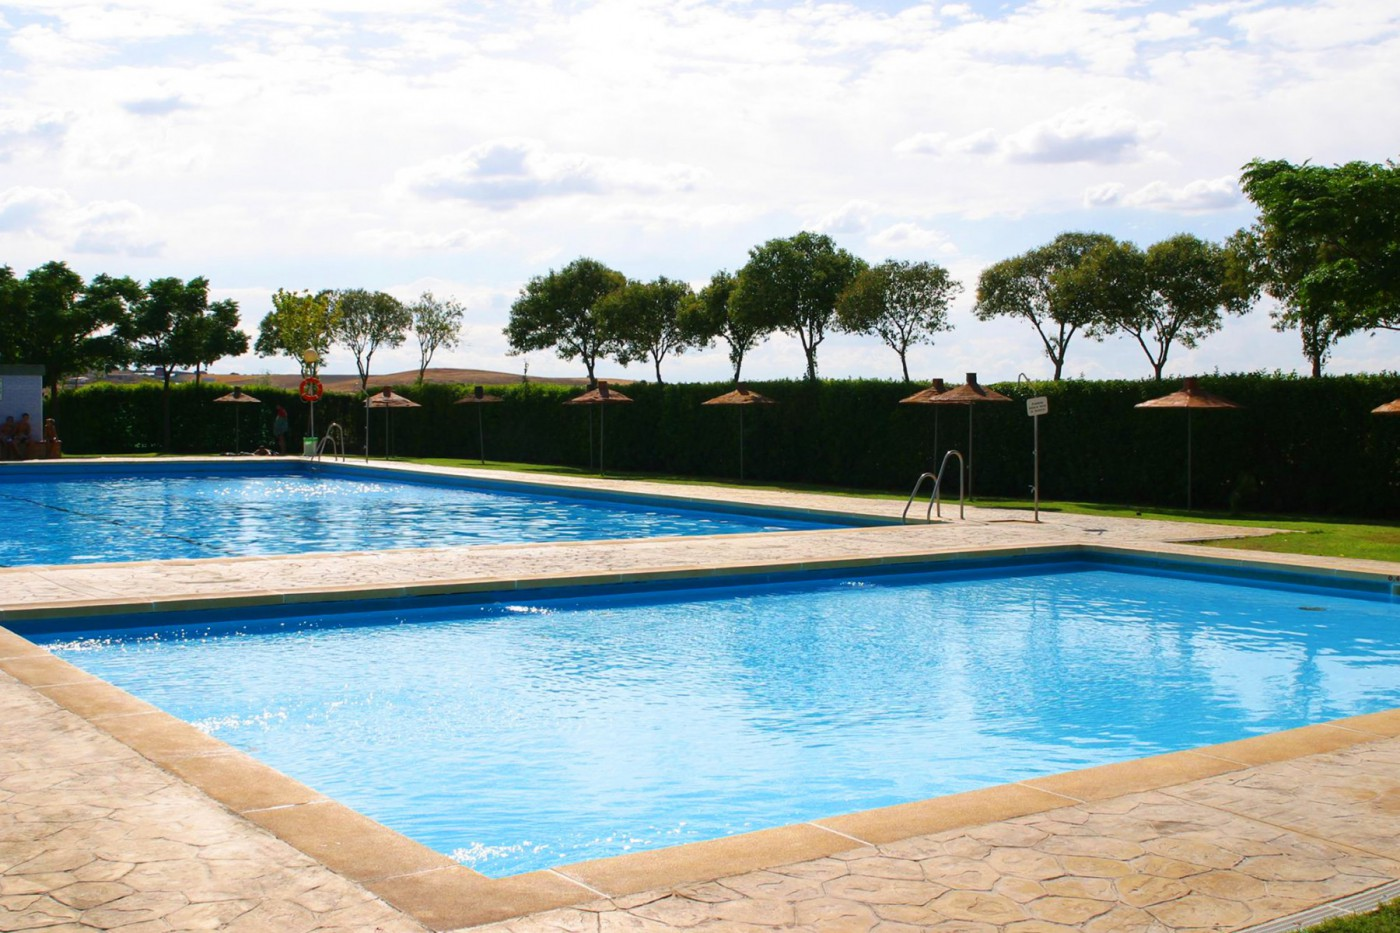 Piscine camping carlos iii for Piscine pour camping